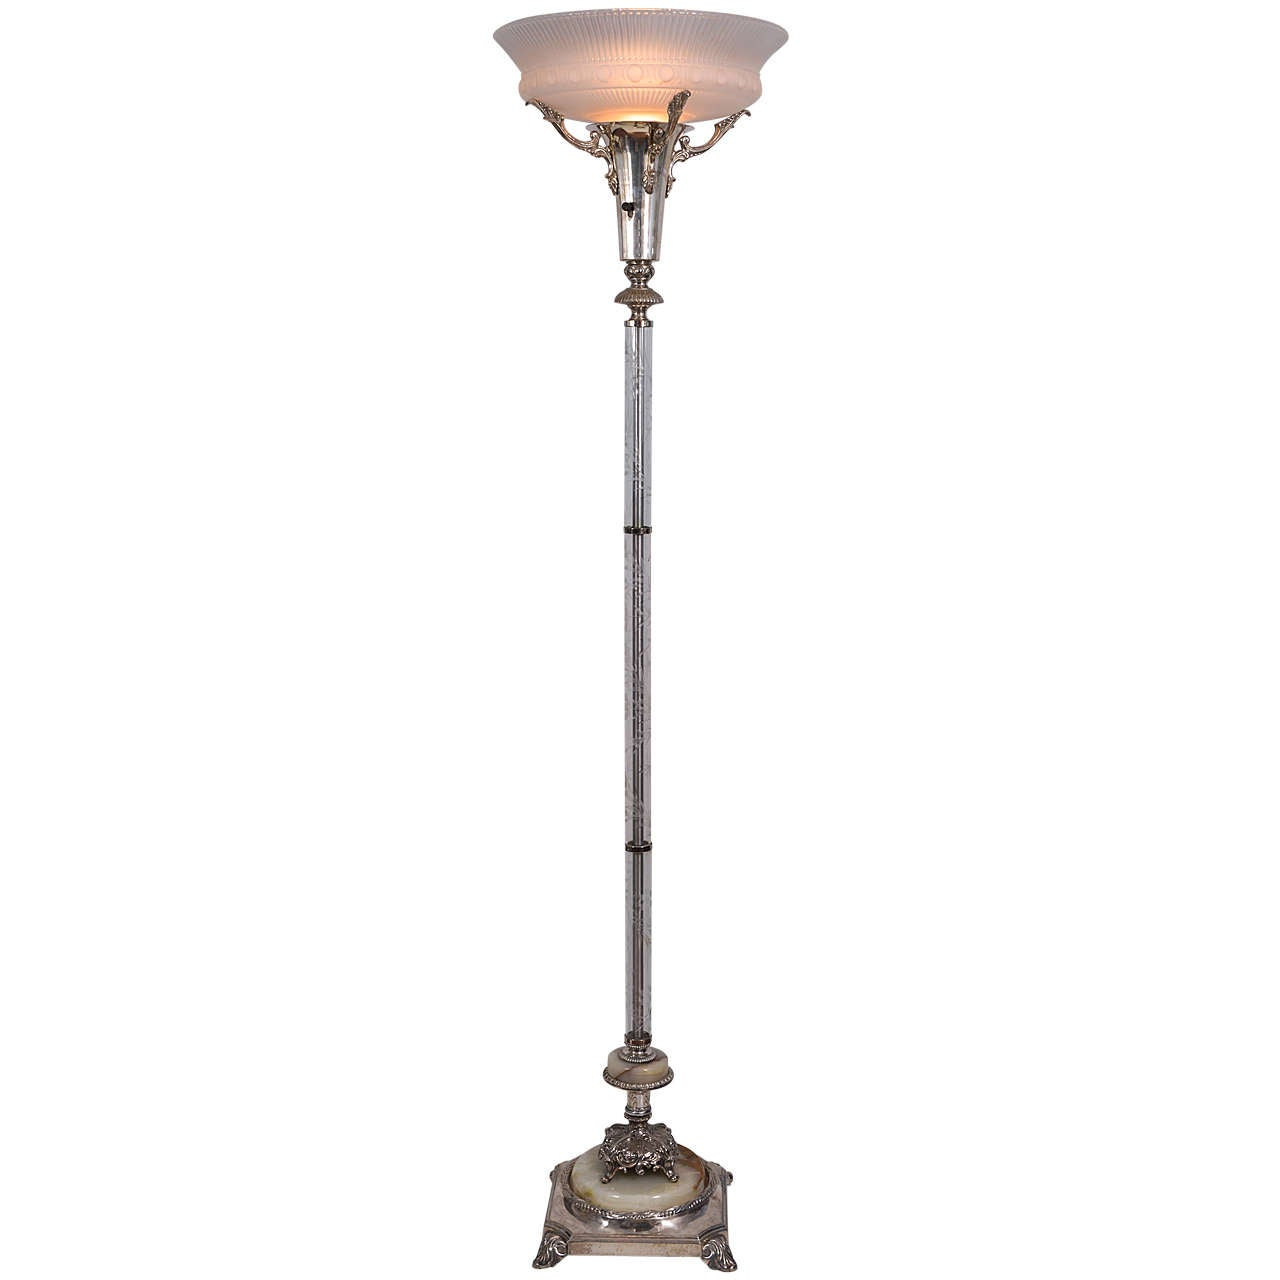 Silver plated torchiere floor lamp at 1stdibs for 1940s torchiere floor lamp